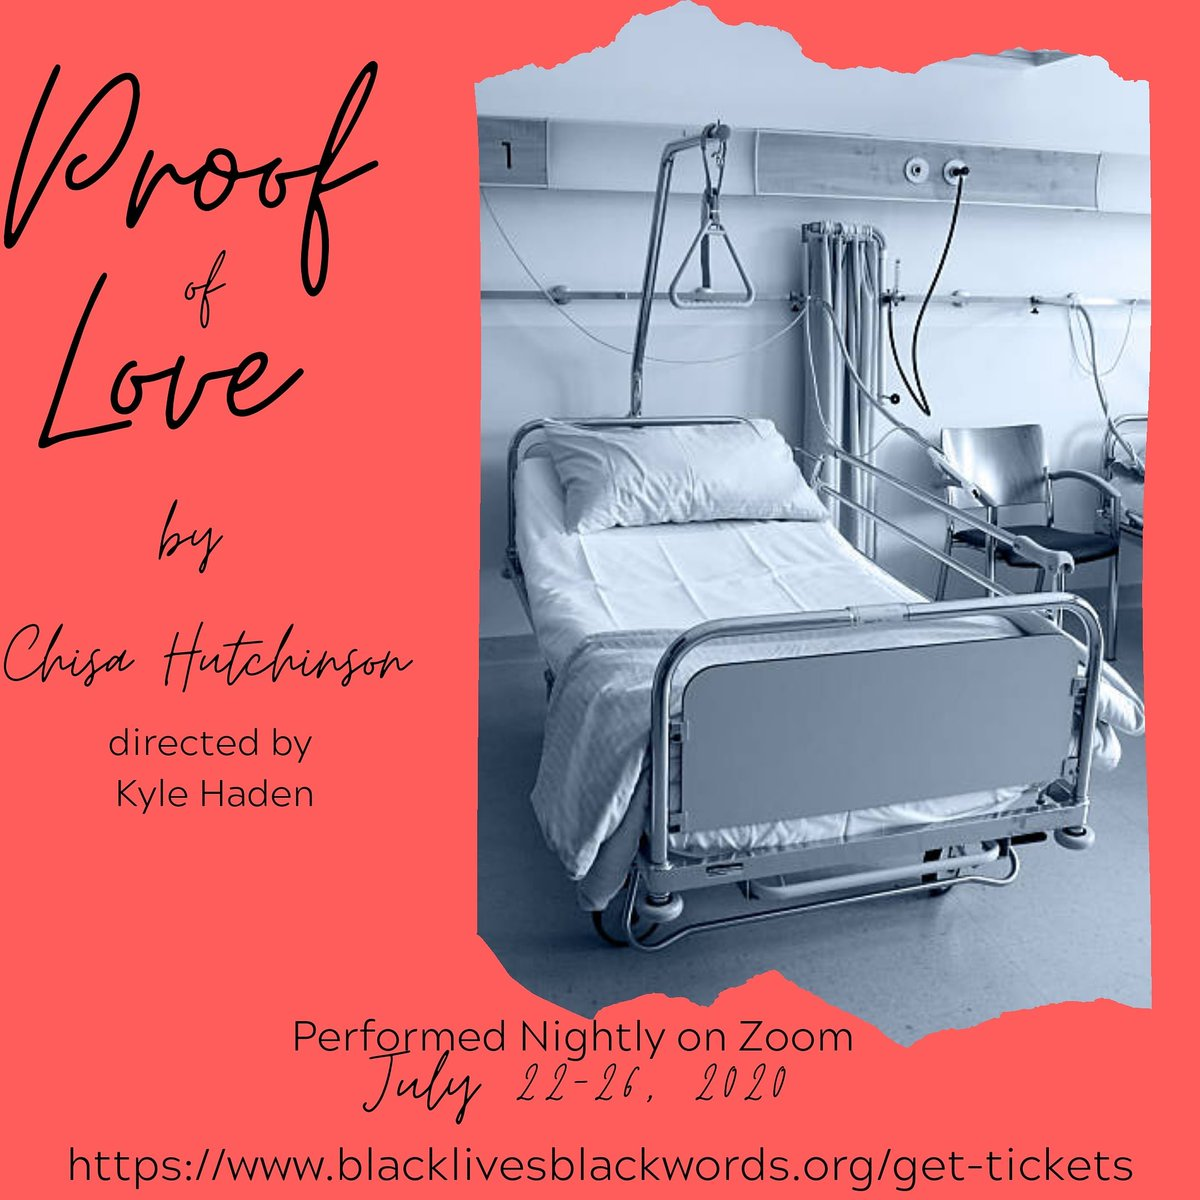 Get your tickets to Chisa Hutchinson's beautiful new play 'Proof of Love'- A part of Black Lives Black Words International Project's Plays for the People  Directed by Kyle Haden   Performed Nightly on Zoom, July 22-26, 2020  https://t.co/OFA6OjX4vw  #blacktheatrematters https://t.co/SBnkk4kVwM